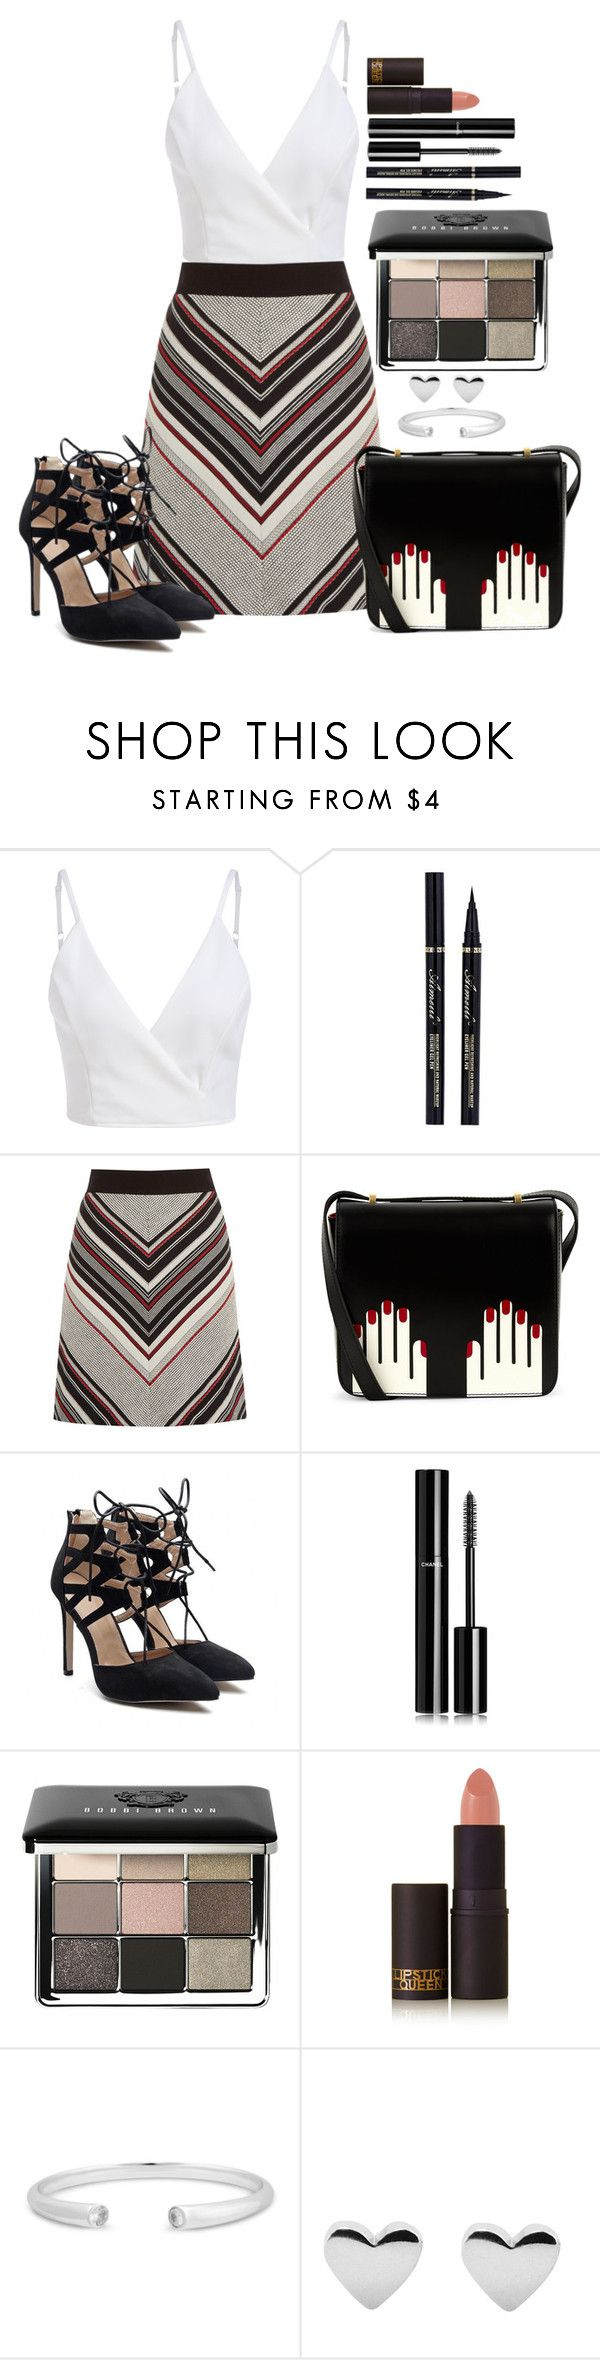 """Untitled #1449"" by fabianarveloc on Polyvore featuring Warehouse, Lulu Guinness, Chanel, Bobbi Brown Cosmetics and Lipstick Queen"